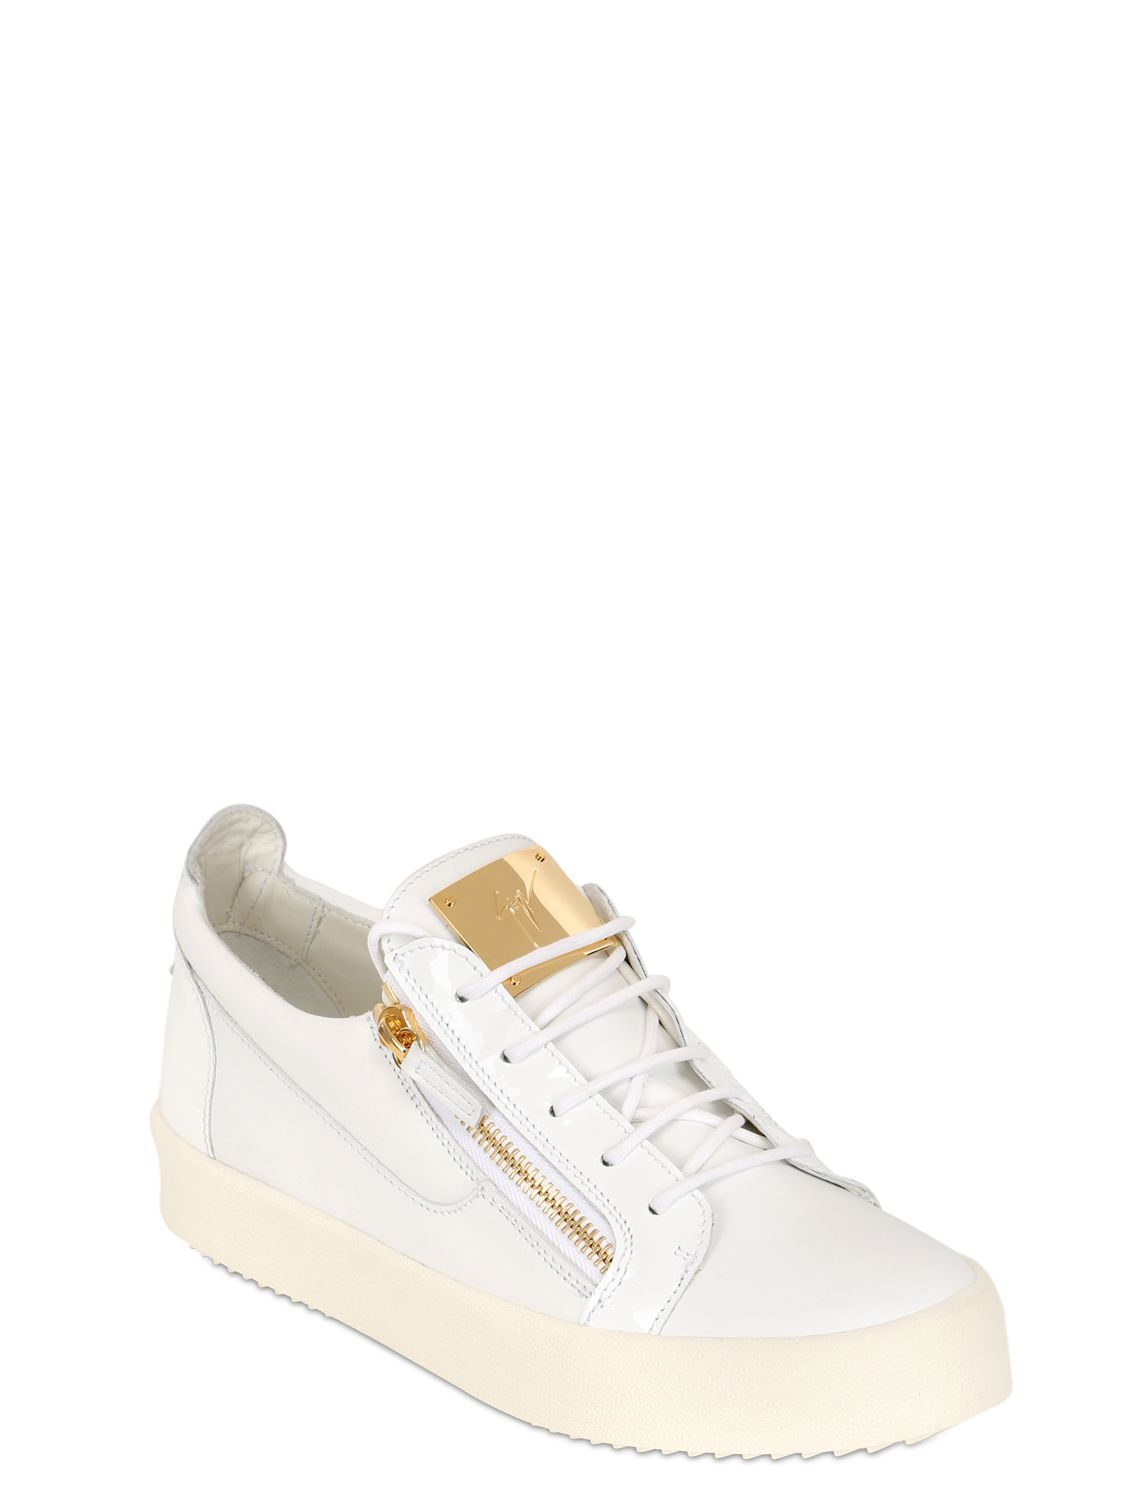 giuseppe zanotti zip up leather sneakers in white for